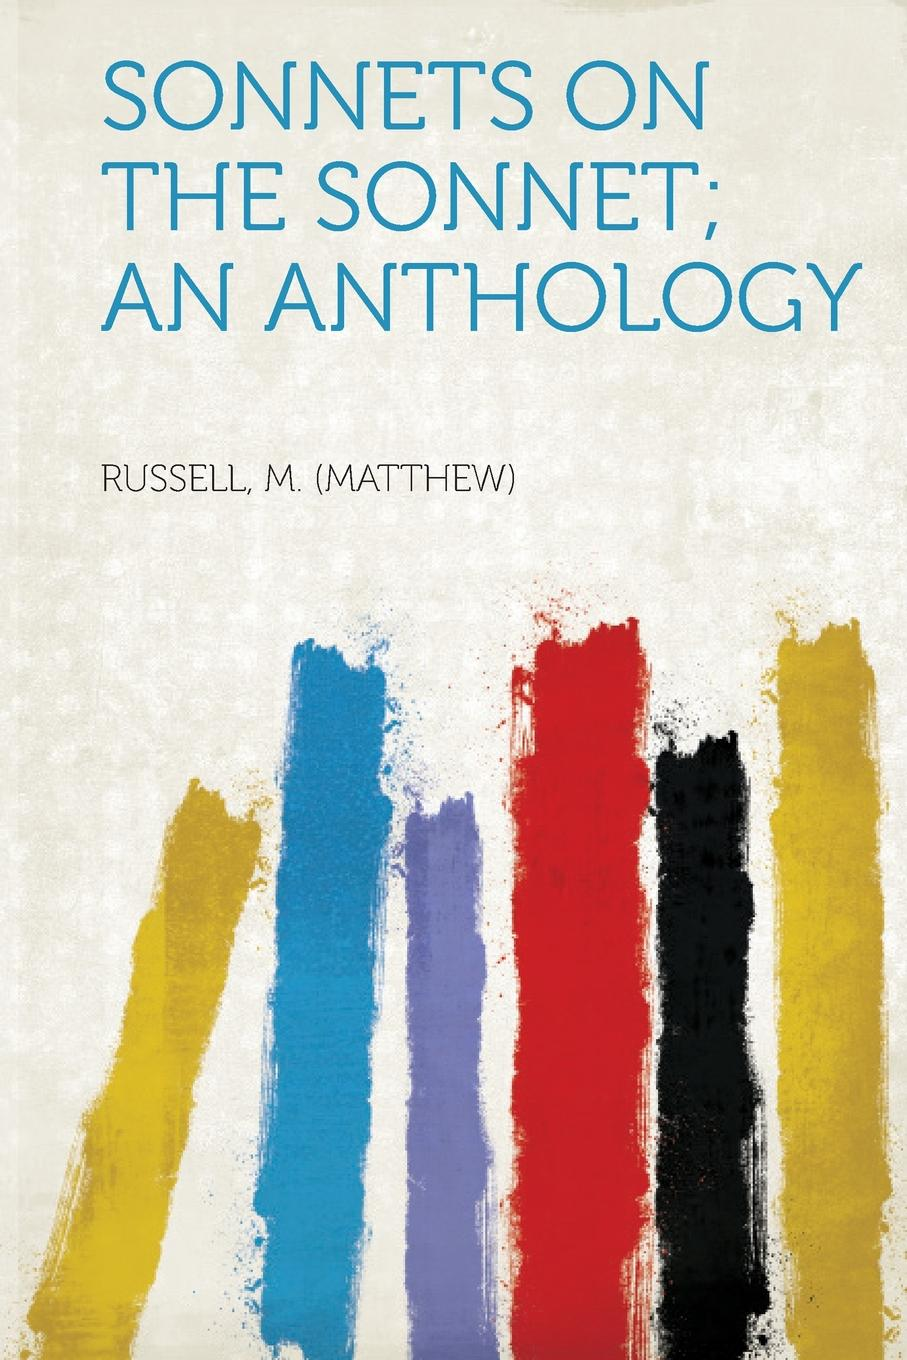 Russell M. (Matthew) Sonnets on the Sonnet; An Anthology